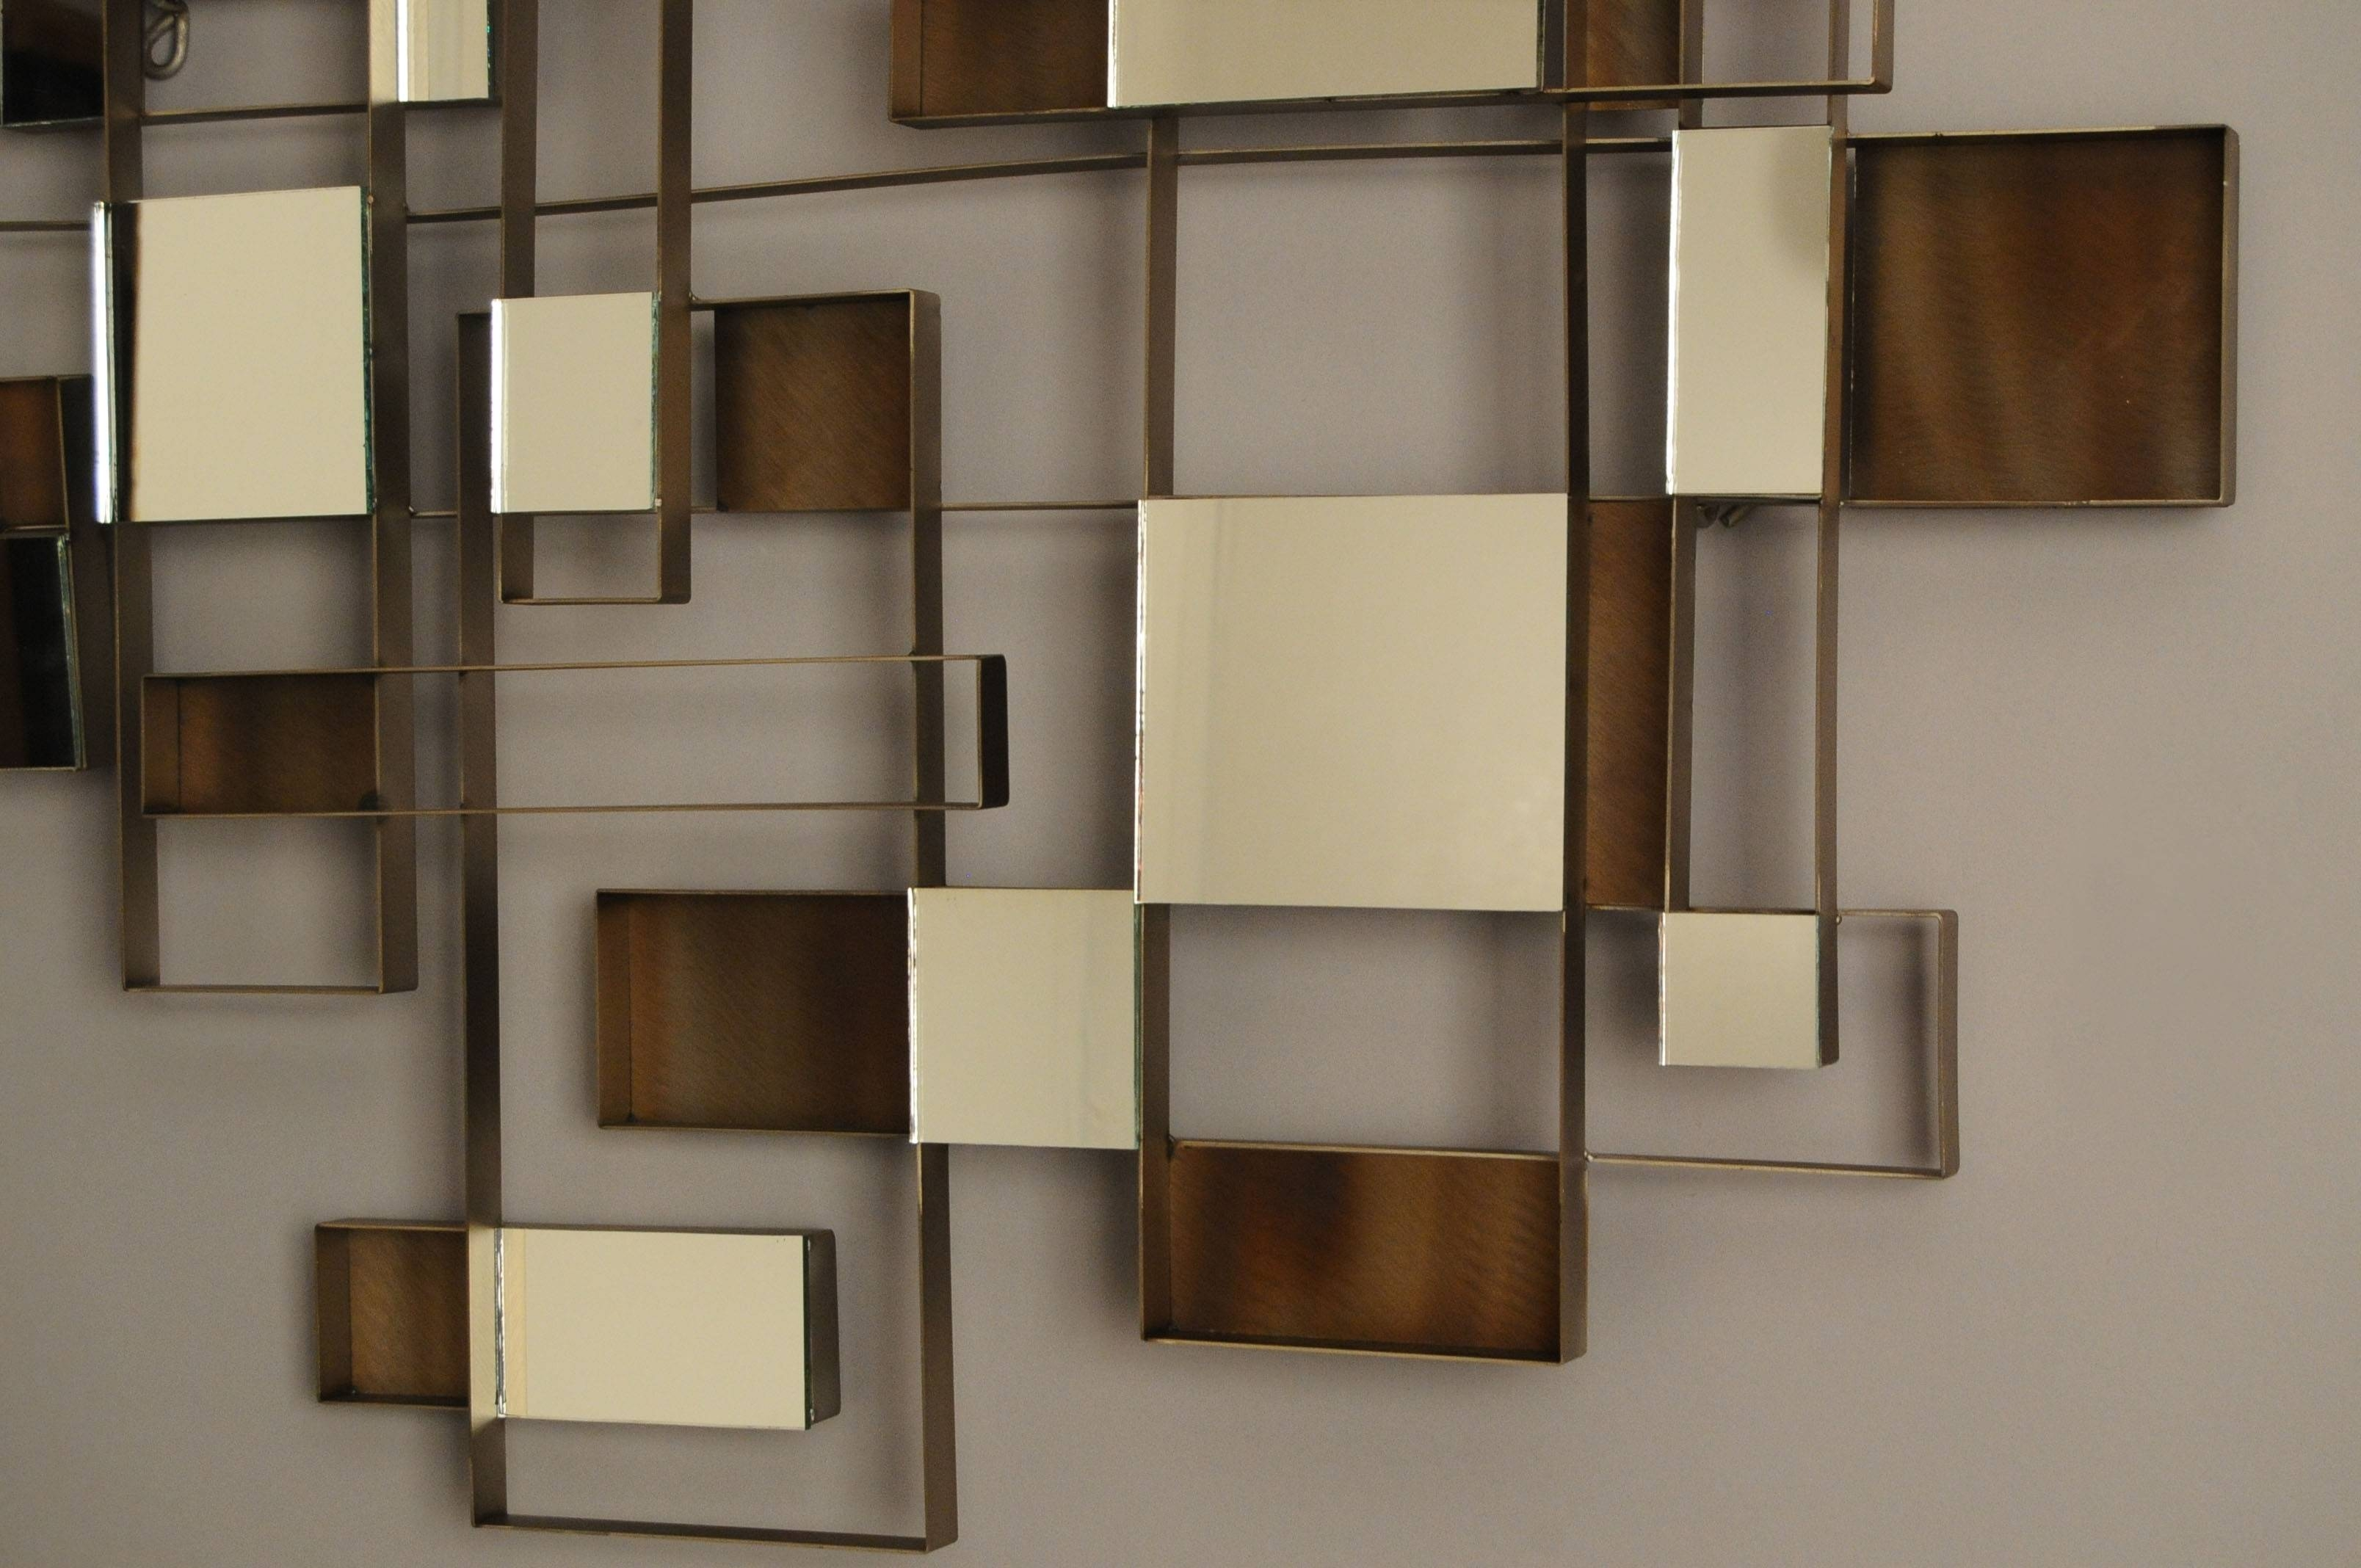 Metal Wall Art Mirrors • Bathroom Mirrors And Wall Mirrors Pertaining To Most Up To Date Metal Wall Art With Mirrors (View 14 of 20)